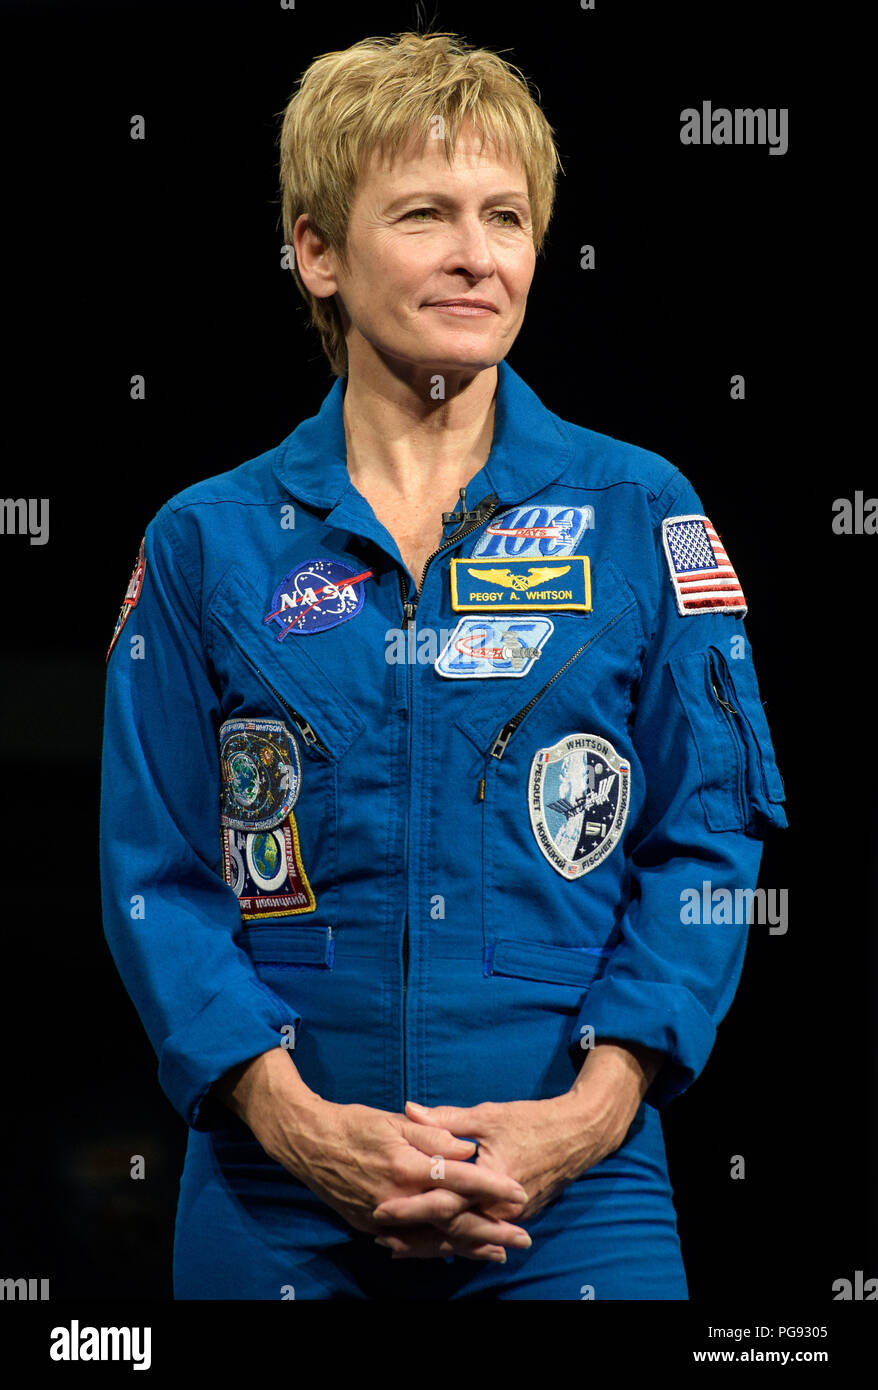 NASA astronaut Peggy Whitson is seen during an interview, Friday, March 2, 2018 at the Smithsonian's National Air and Space Museum in Washington. Whitson spent 288 days onboard the International Space Station as a member of Expedition 50, 51, and 52, conducting four spacewalks and contributing to hundreds of experiments in biology, biotechnology, physical science and Earth science during her stay. - Stock Image